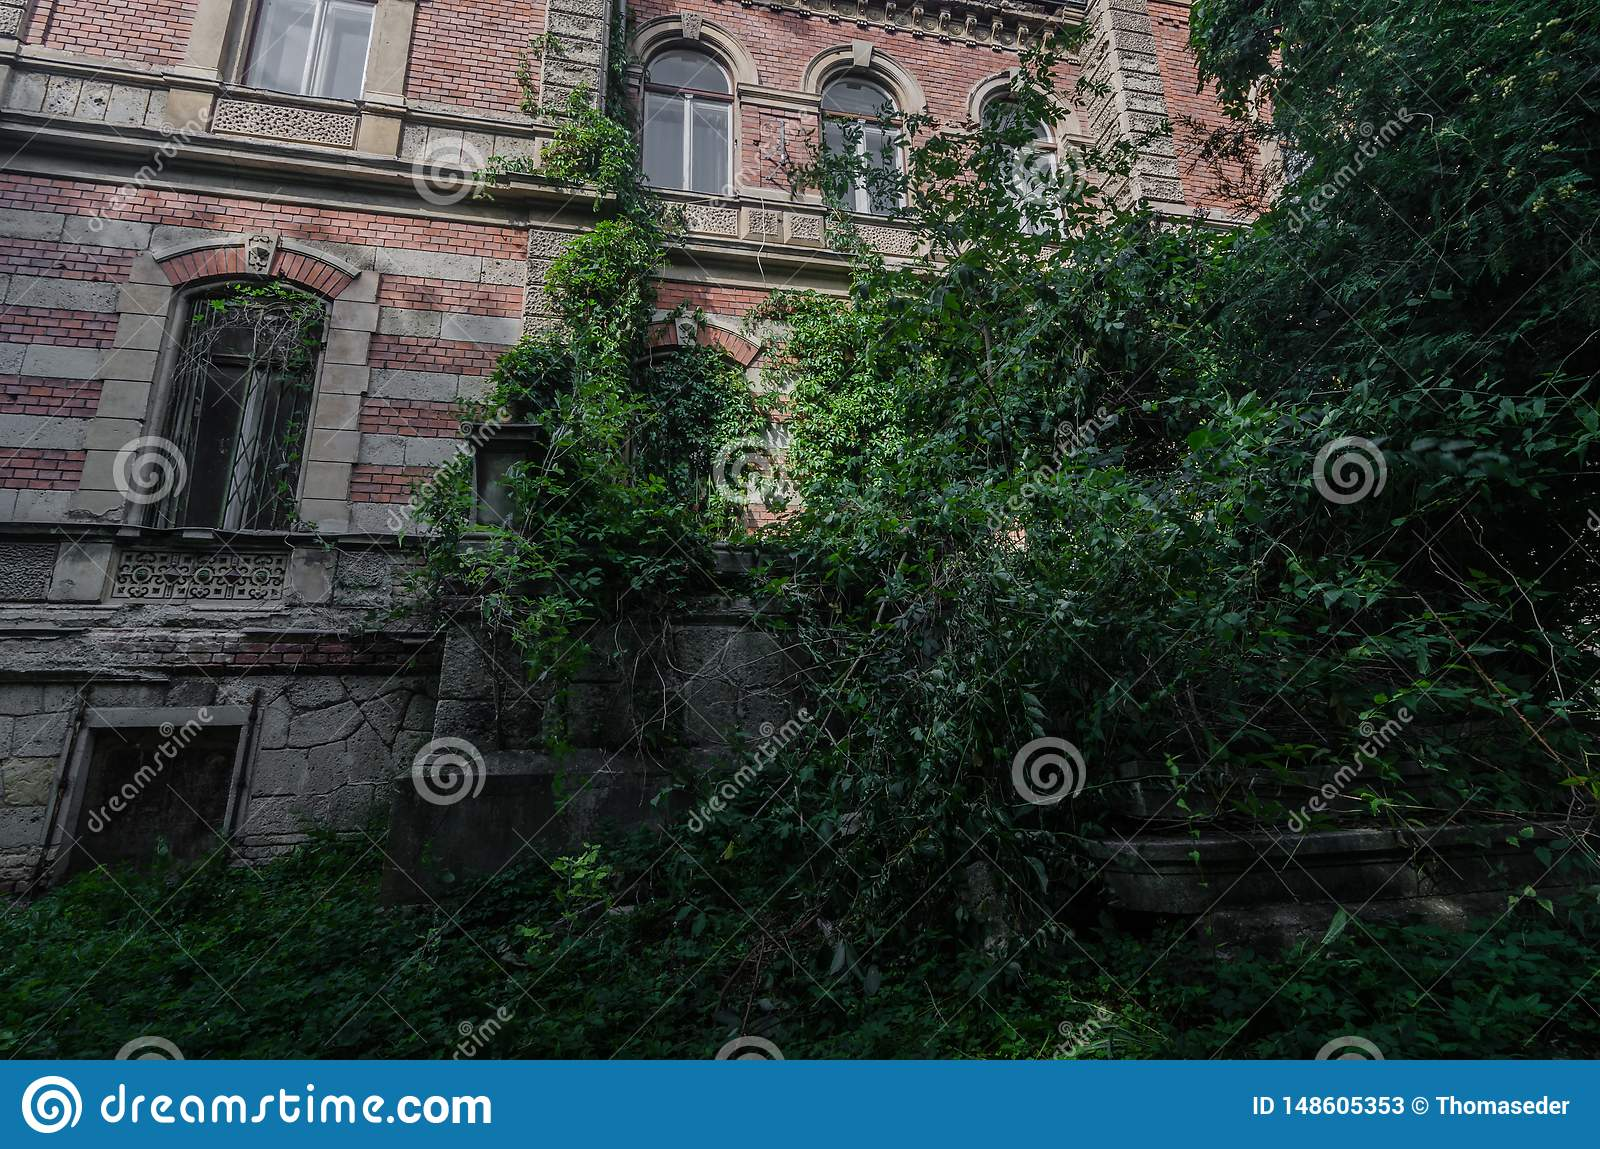 villa in a forest with many bricks